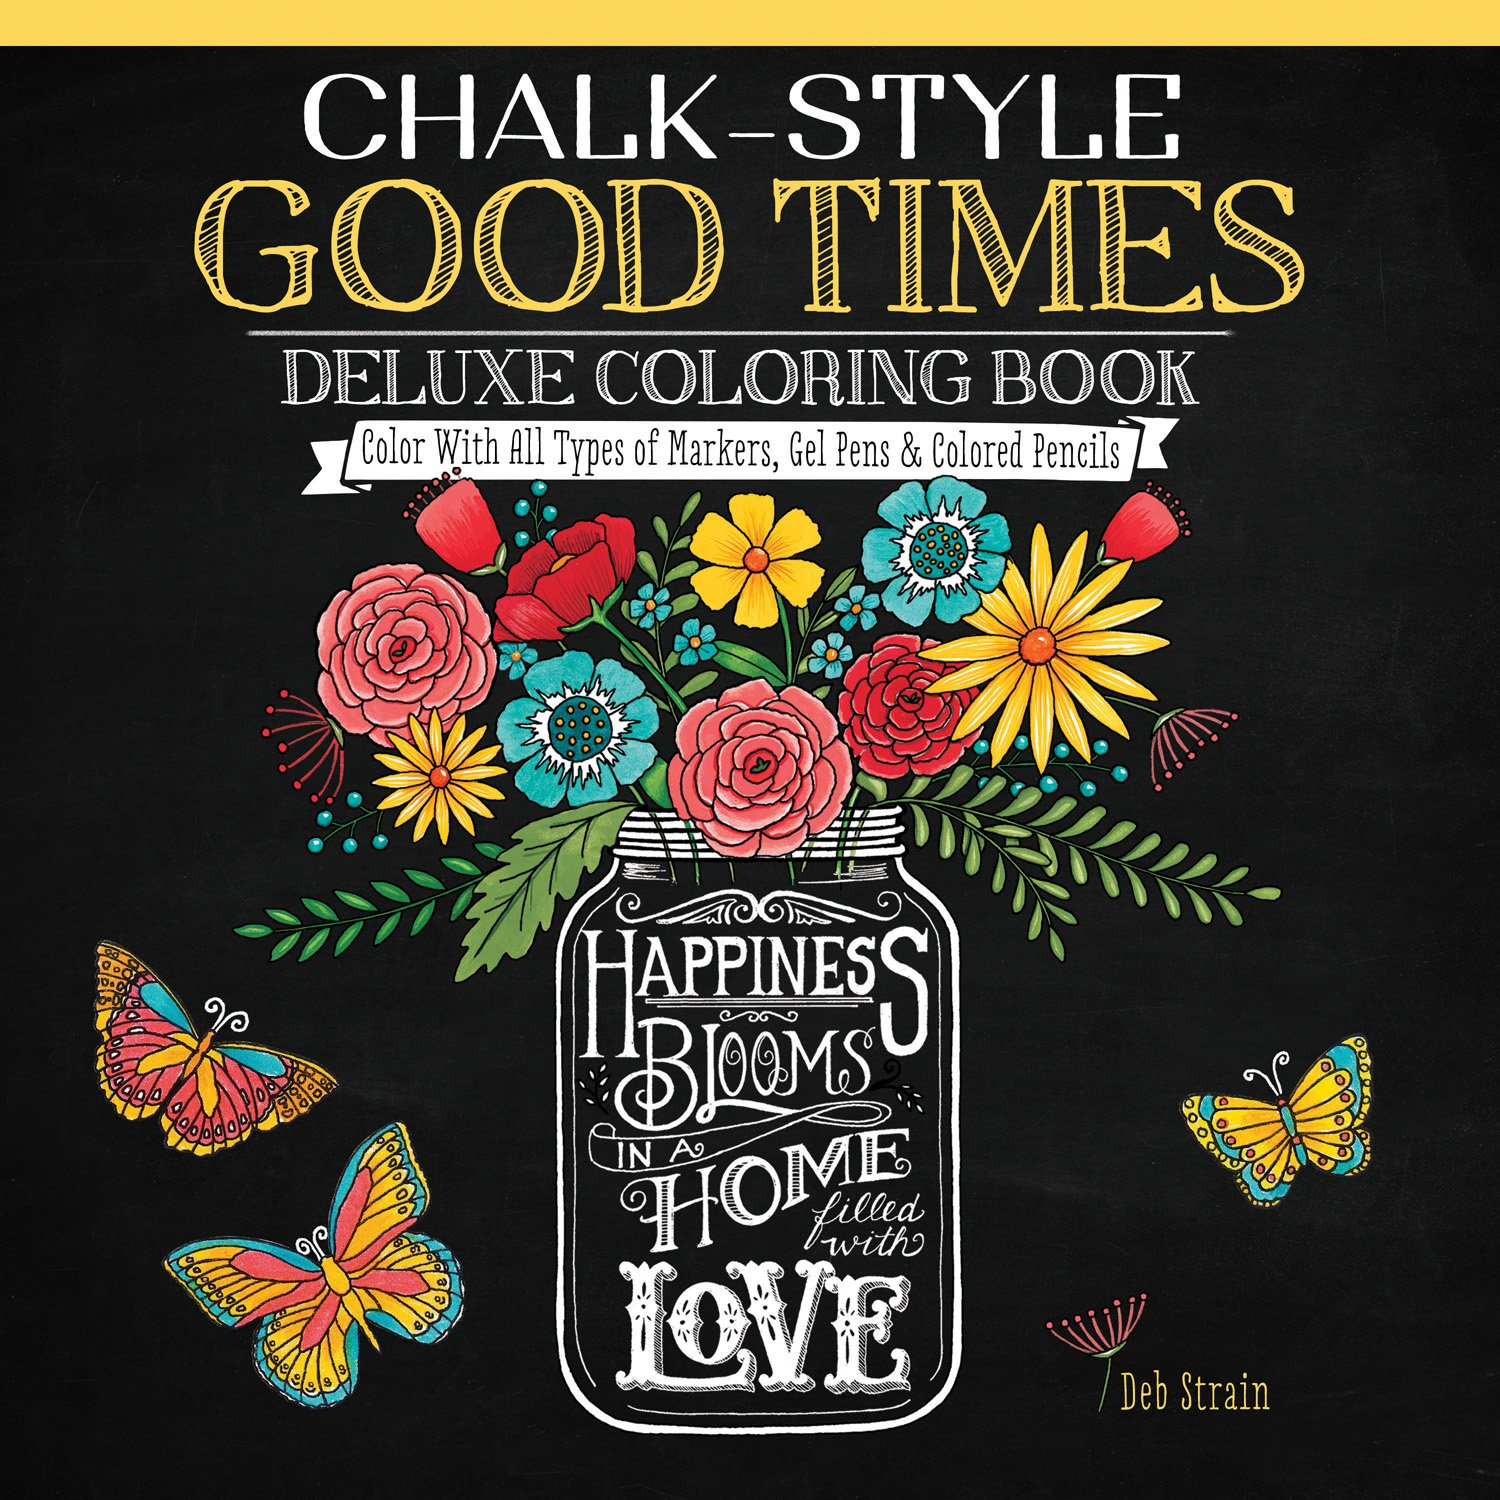 Amazon Chalk Style Good Times Deluxe Coloring Book Color With All Types Of Markers Gel Pens Colored Pencils Design Originals 9781497201521 Deb